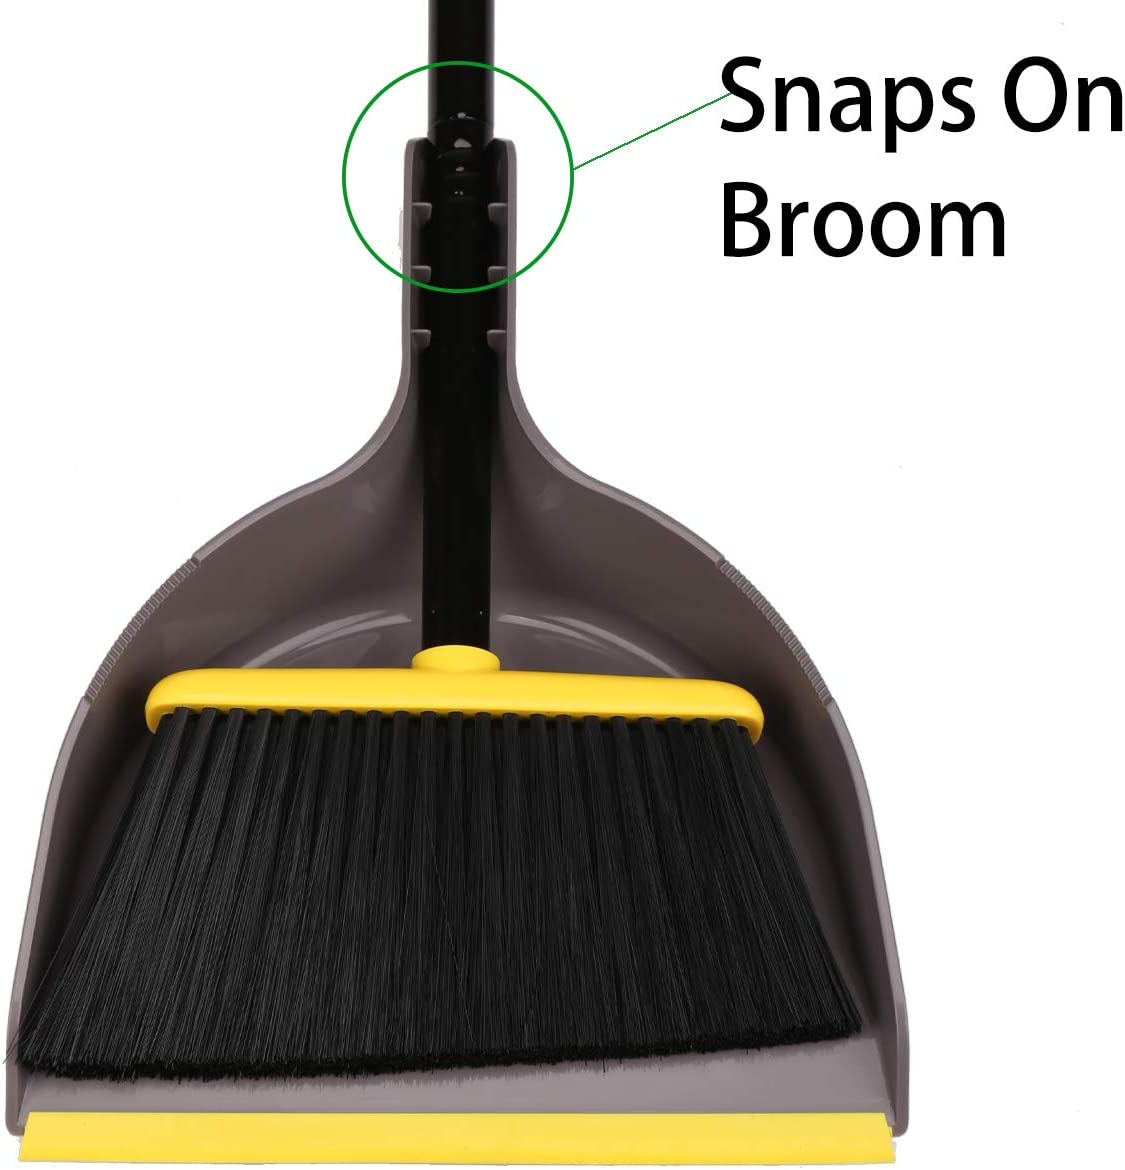 Angle Broom with Dustpan,Dust pan Snaps On Broom Handles,Broom with Attachable Dustpan: Kitchen & Dining